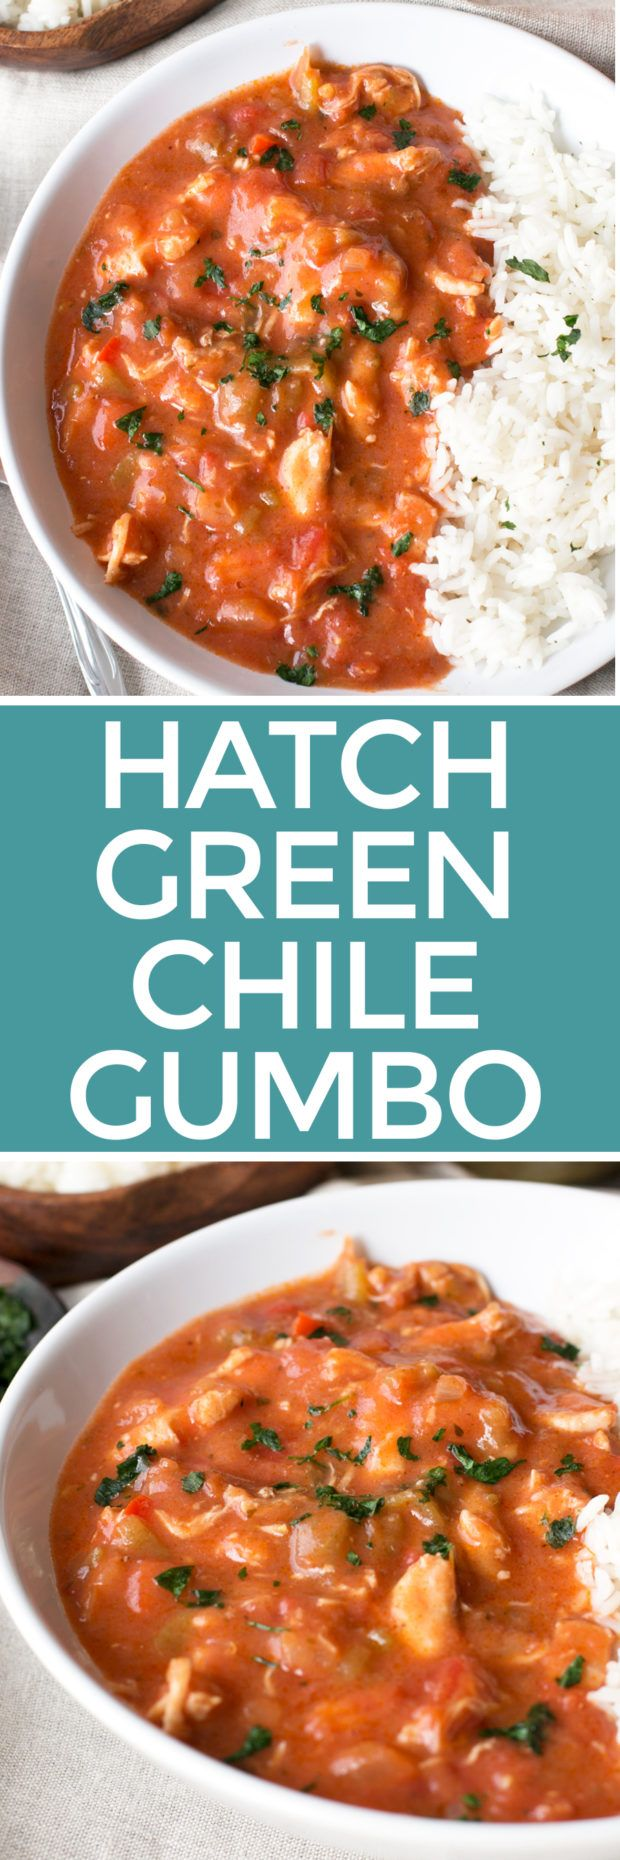 Hatch Green Chile Gumbo – Cake 'n Knife